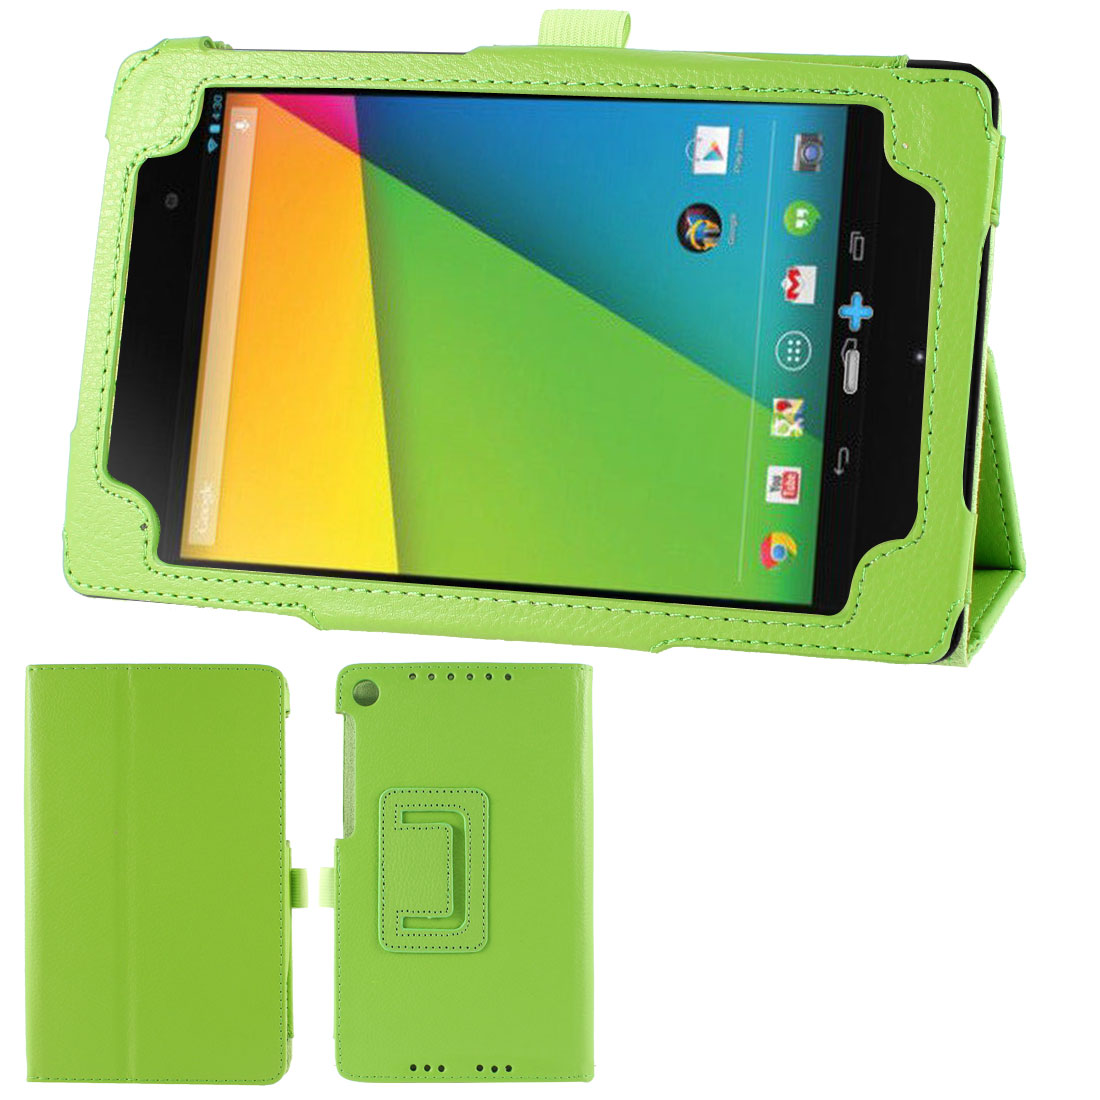 Green Stand Folio Cover Case for Google Nexus 7 2nd Gen 2013 Android Tablet